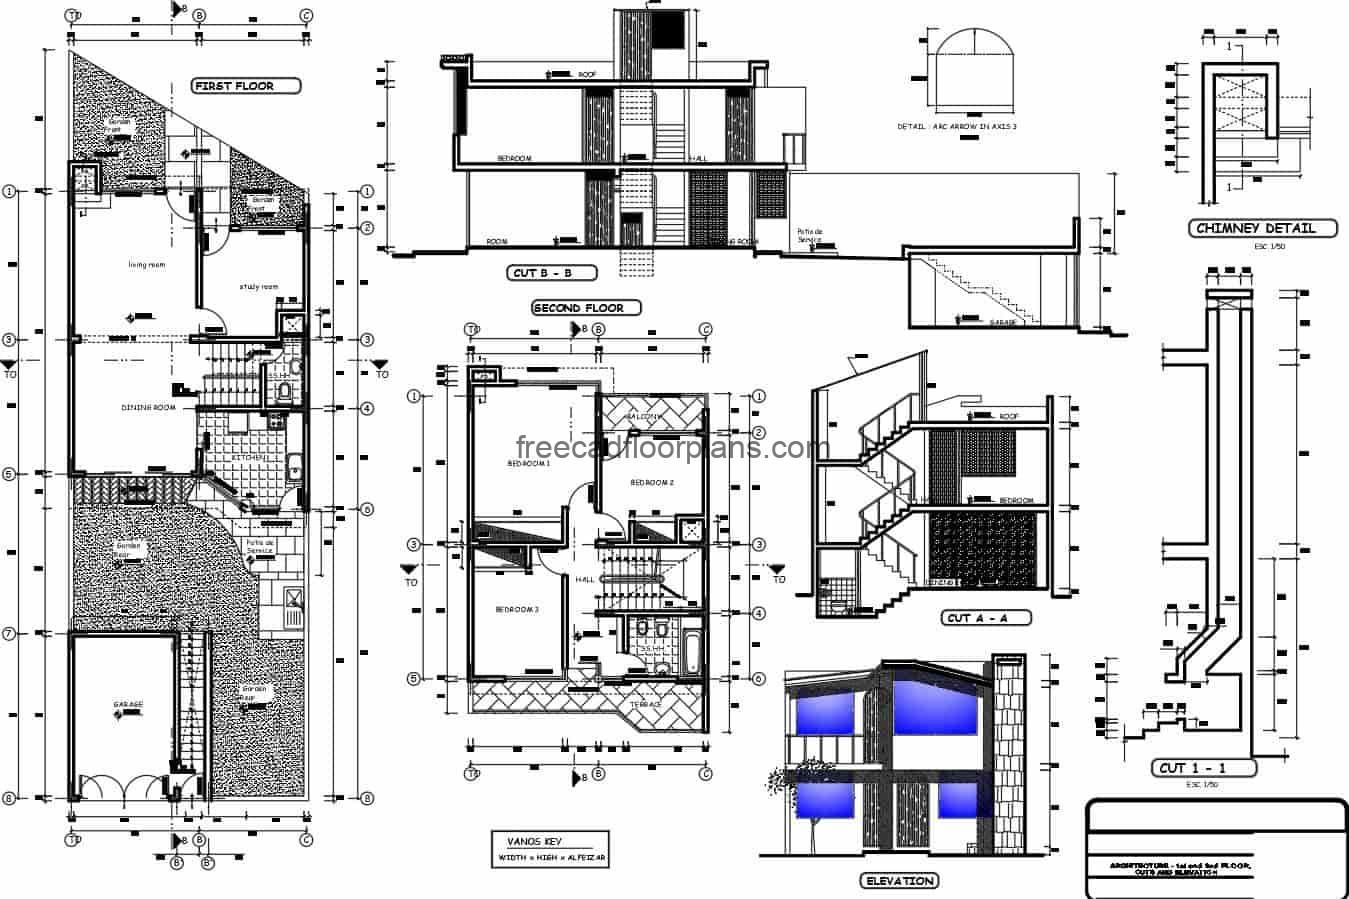 One-family house of two levels before a complete architectural project with dimensions, sections and elevations, plans with structural details and defined spaces. Blueprints for free download in Autocad DWG format, editable, simple small residence.